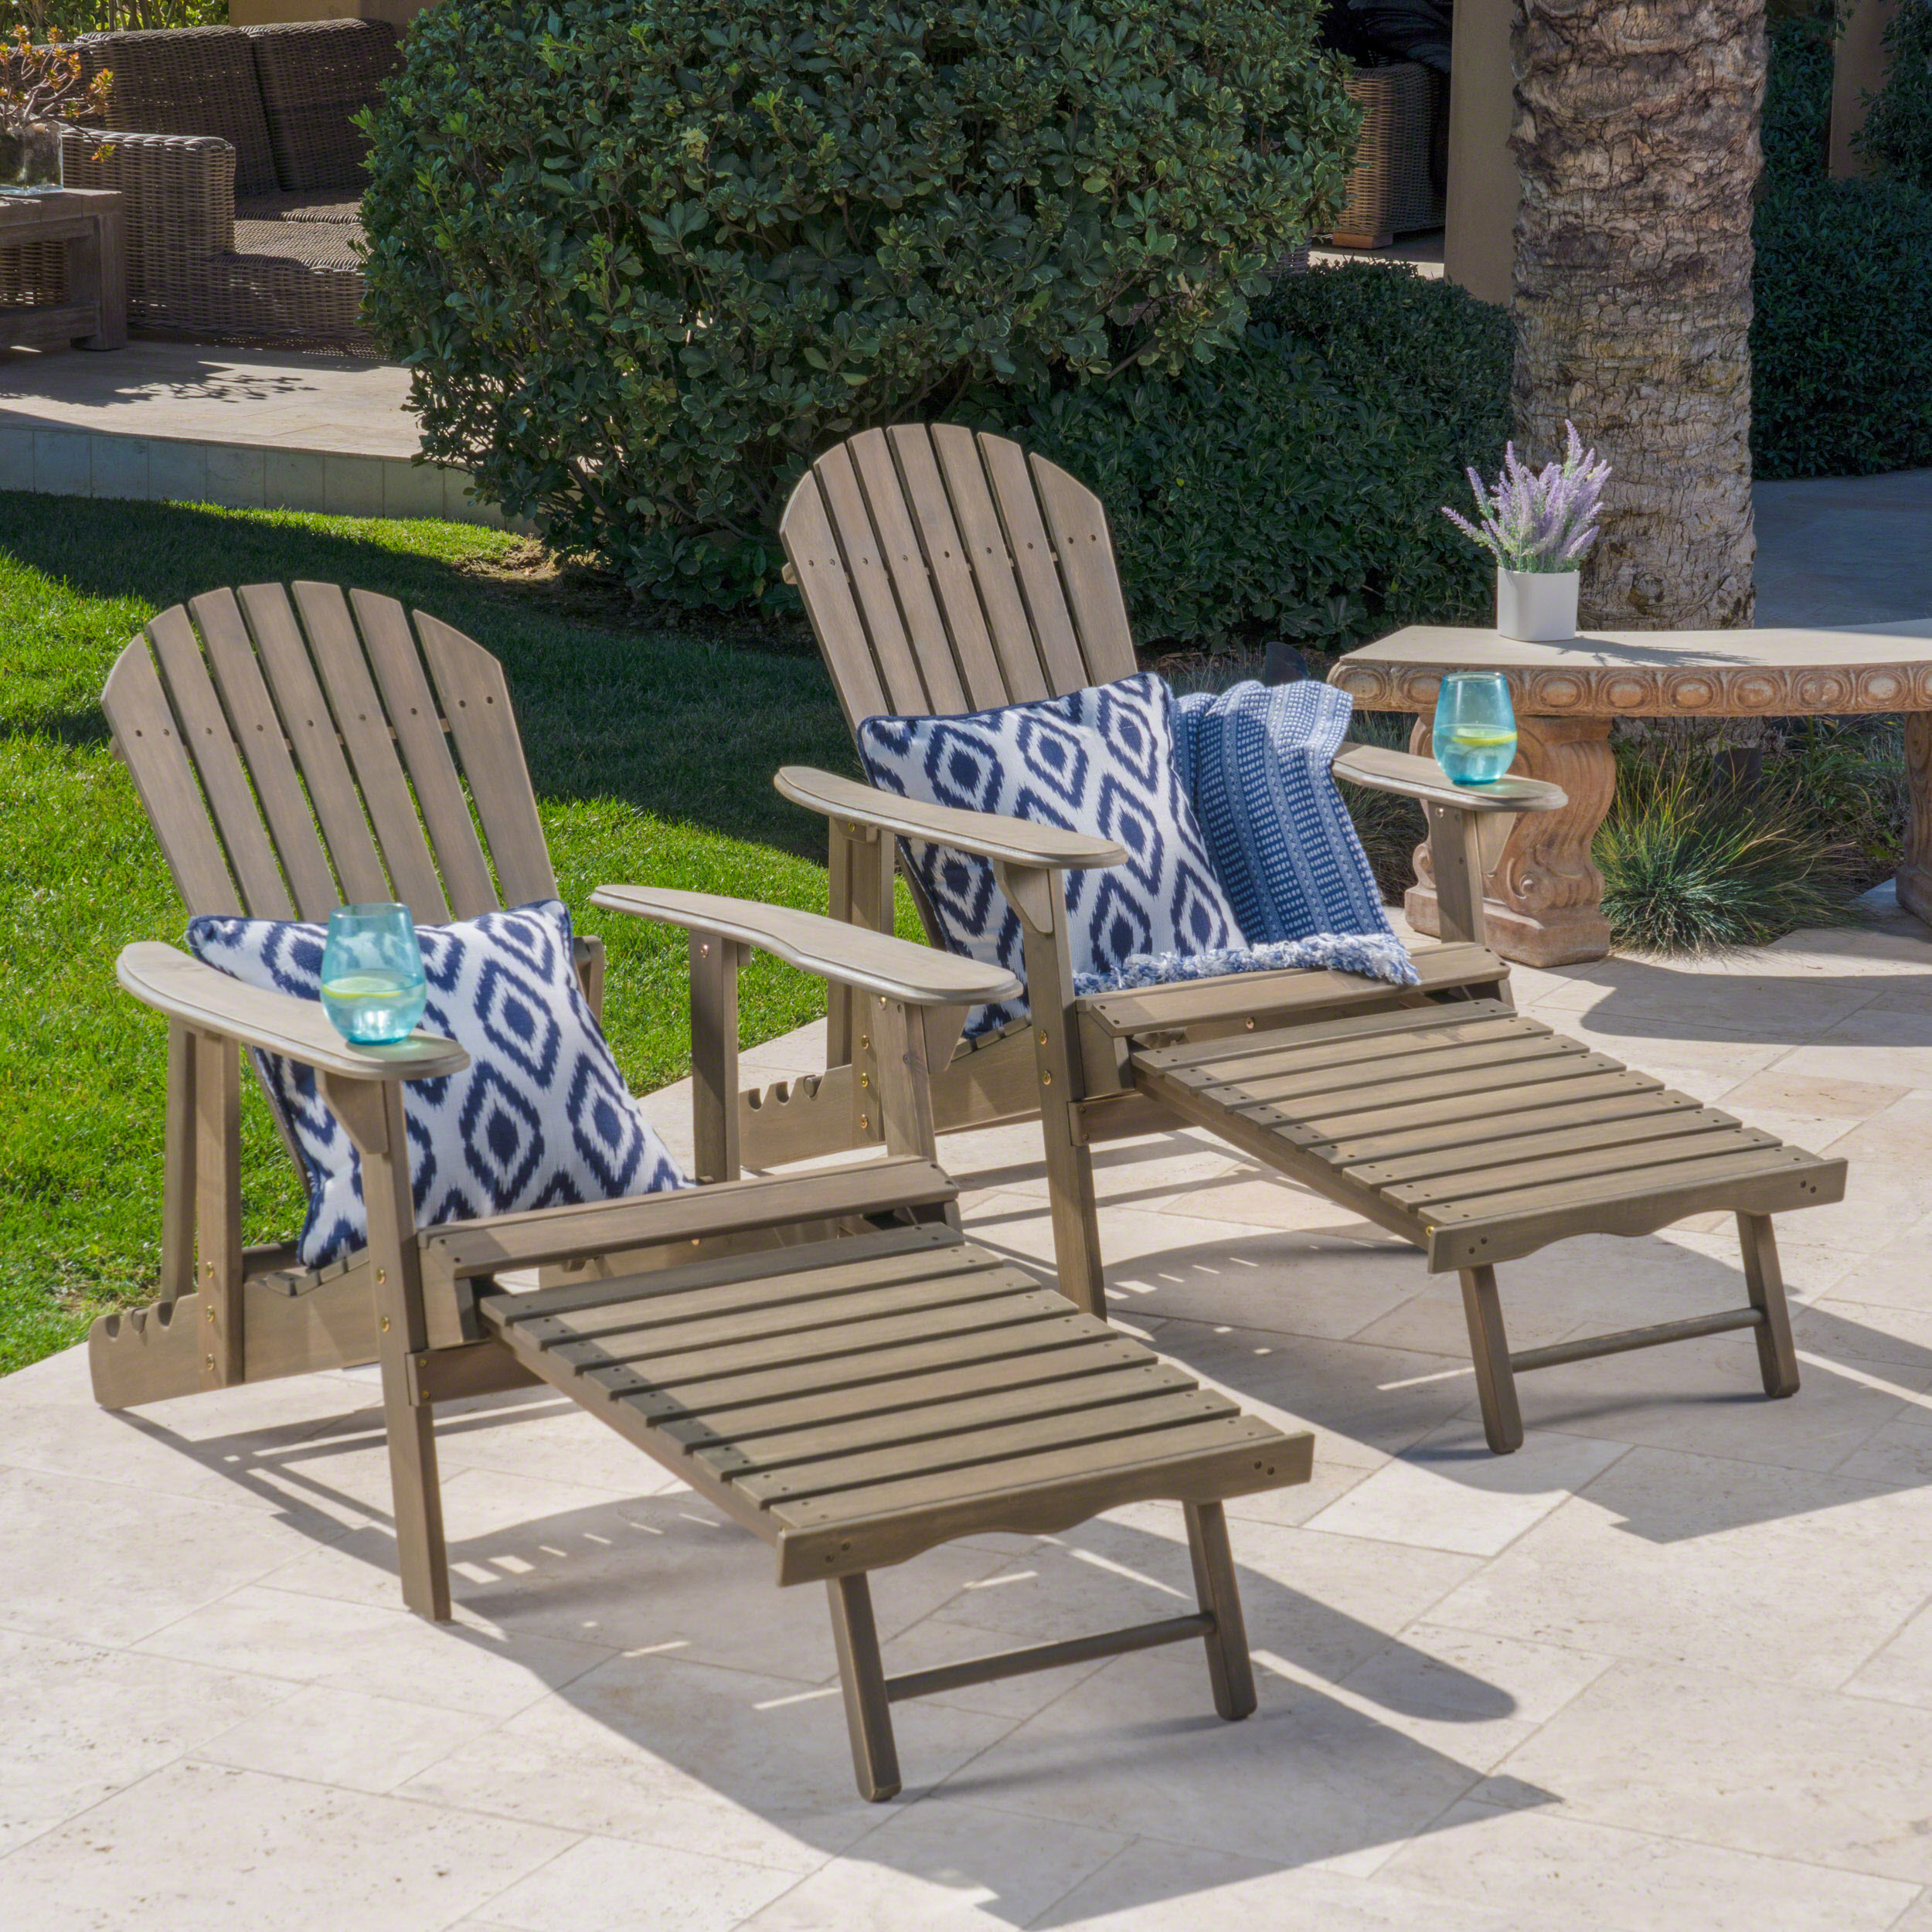 Munoz Reclining Wood Adirondack Chair With Footrest Set Of 2 Grey